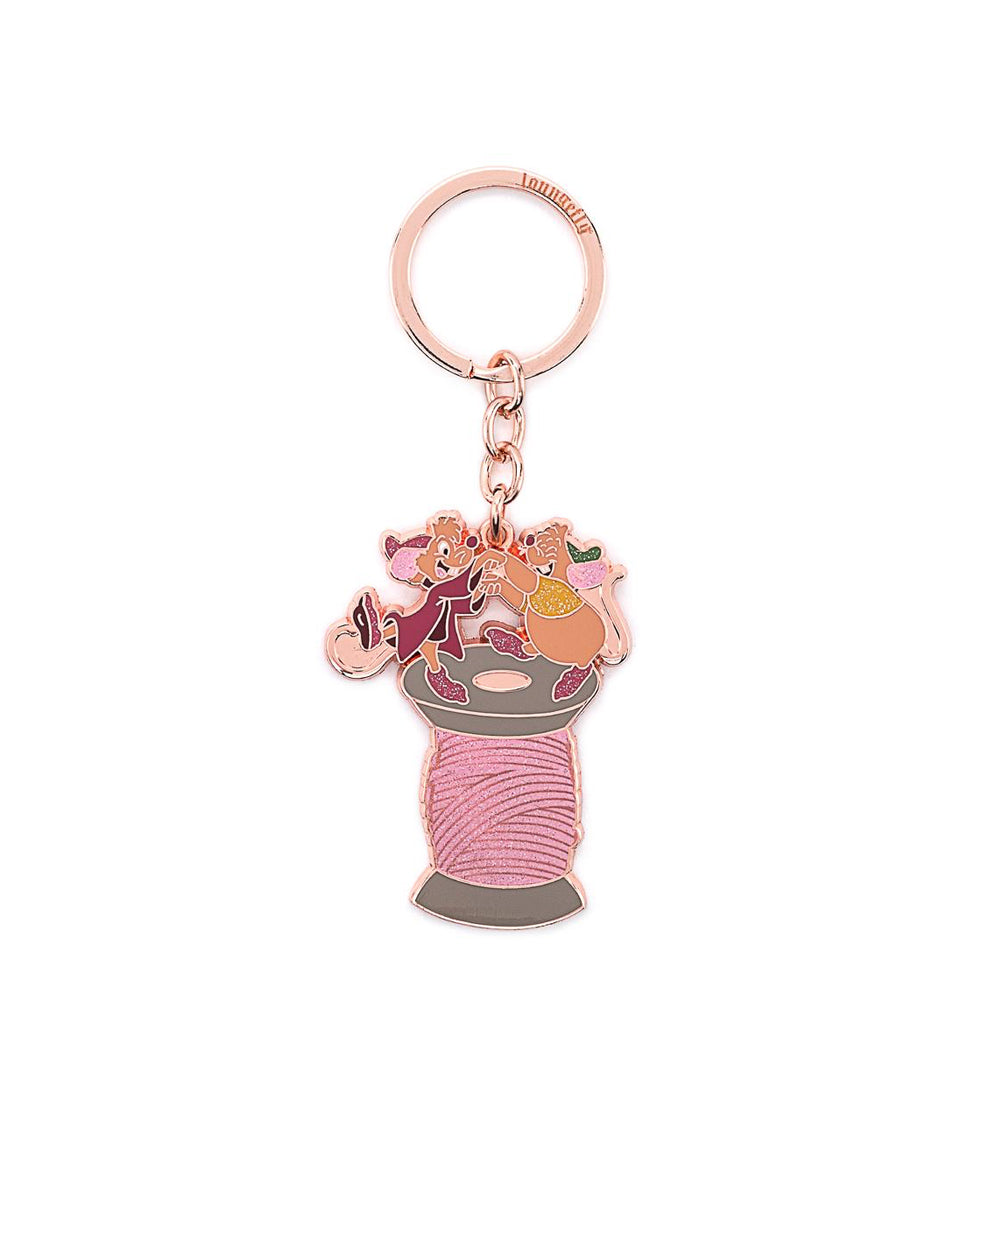 Disney Cinderella Jaq and Gus Spool Enamel Keychain - The Pink a la Mode - Loungefly - The Pink a la Mode